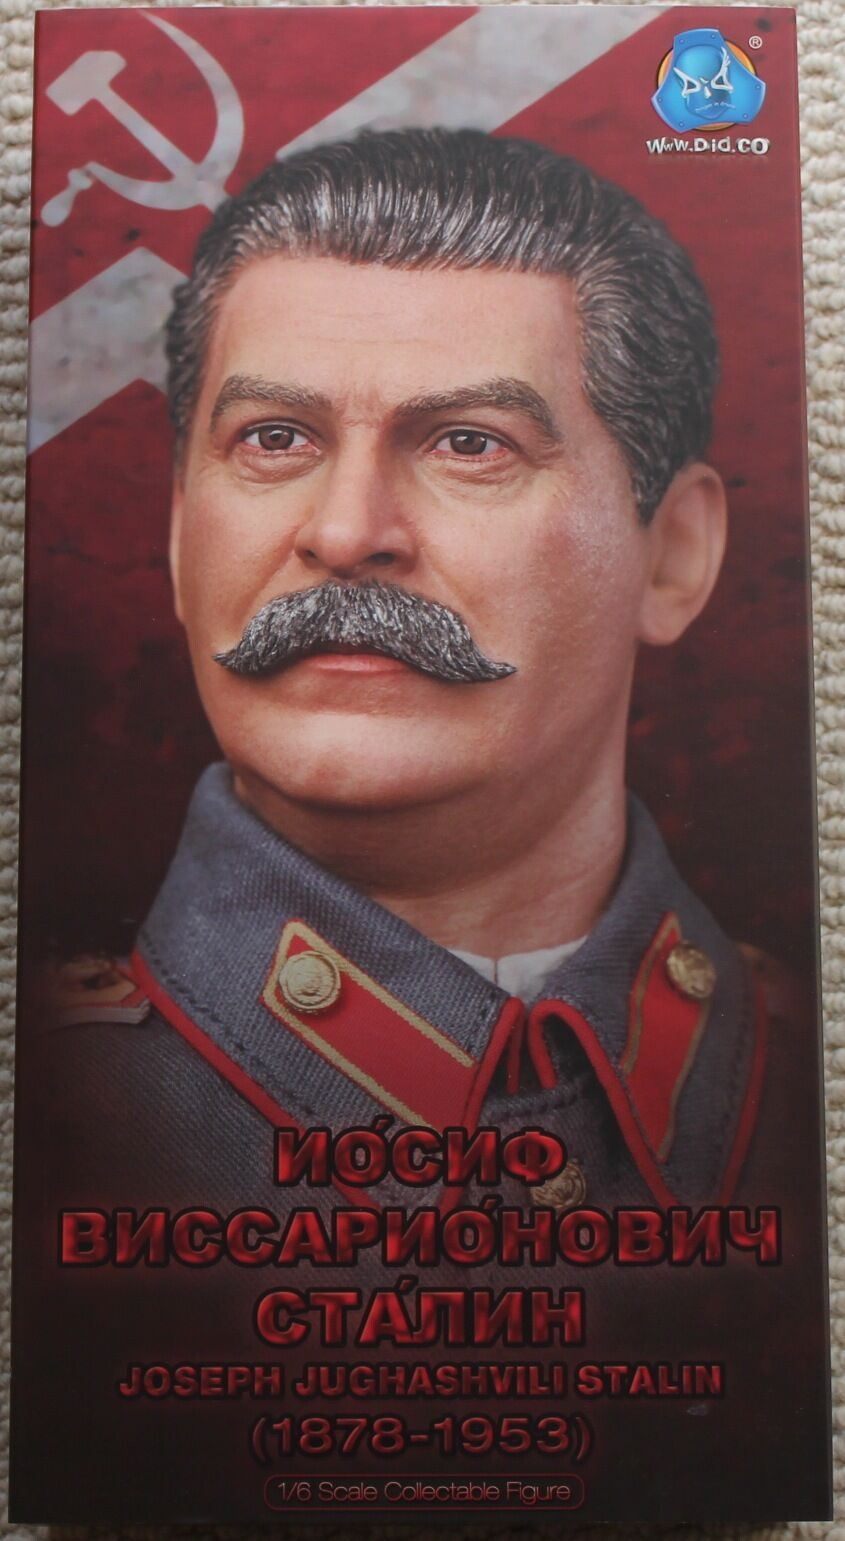 Did action figure ww11 russian stalin 1 6 12'' boxed dragon cyber hot toy